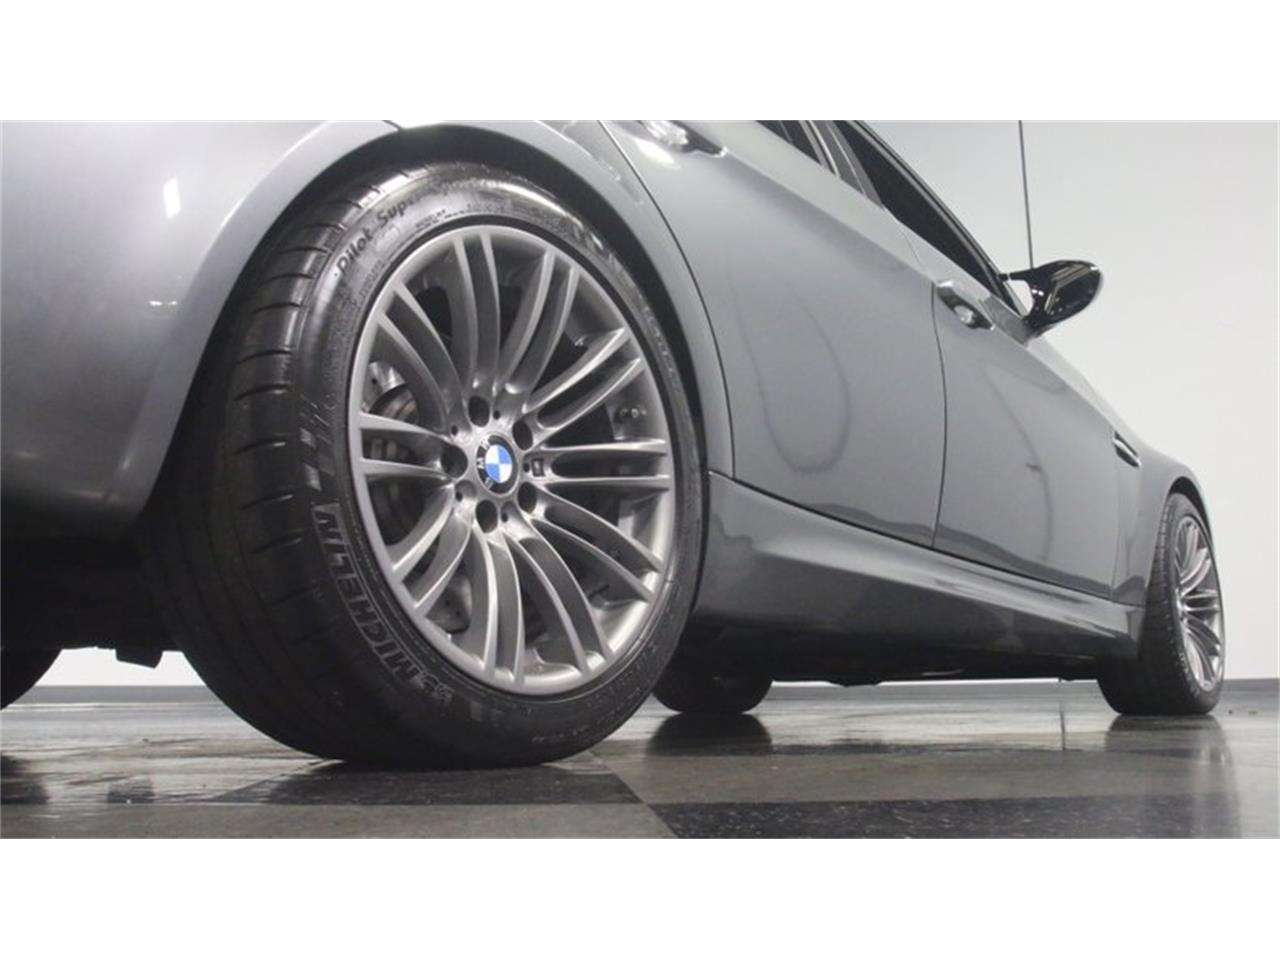 2010 BMW M3 for sale in Lithia Springs, GA – photo 29